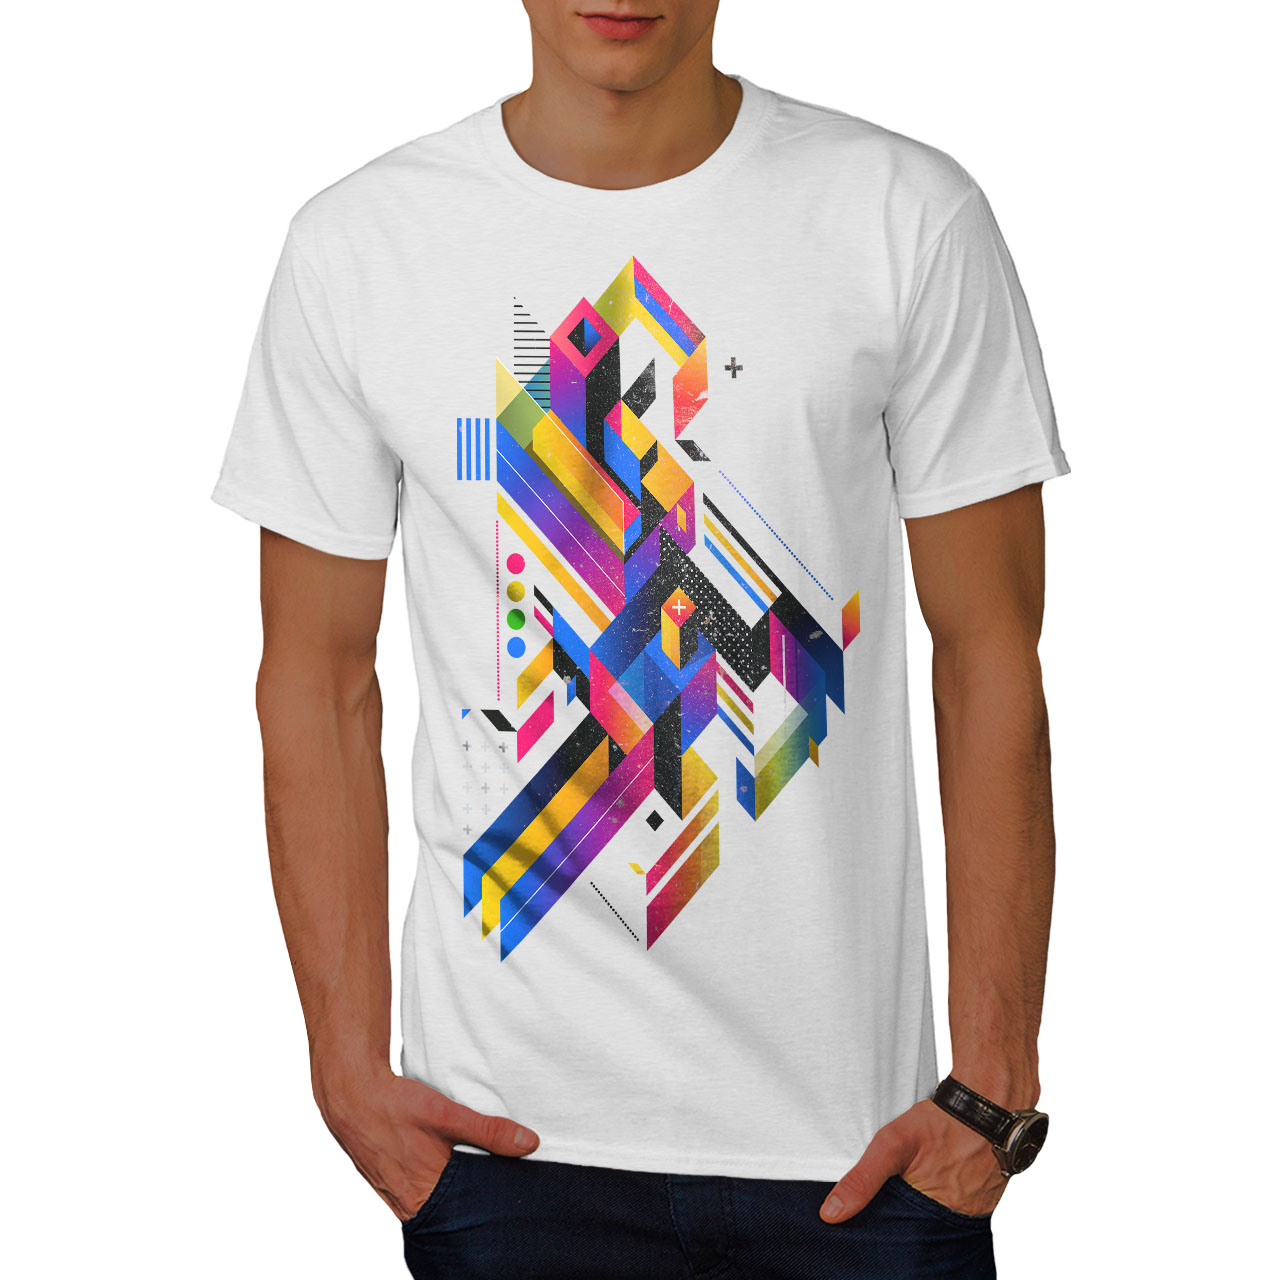 Wellcoda-Abstract-Maze-T-shirt-homme-Labyrinthe-conception-graphique-imprime-Tee miniature 9